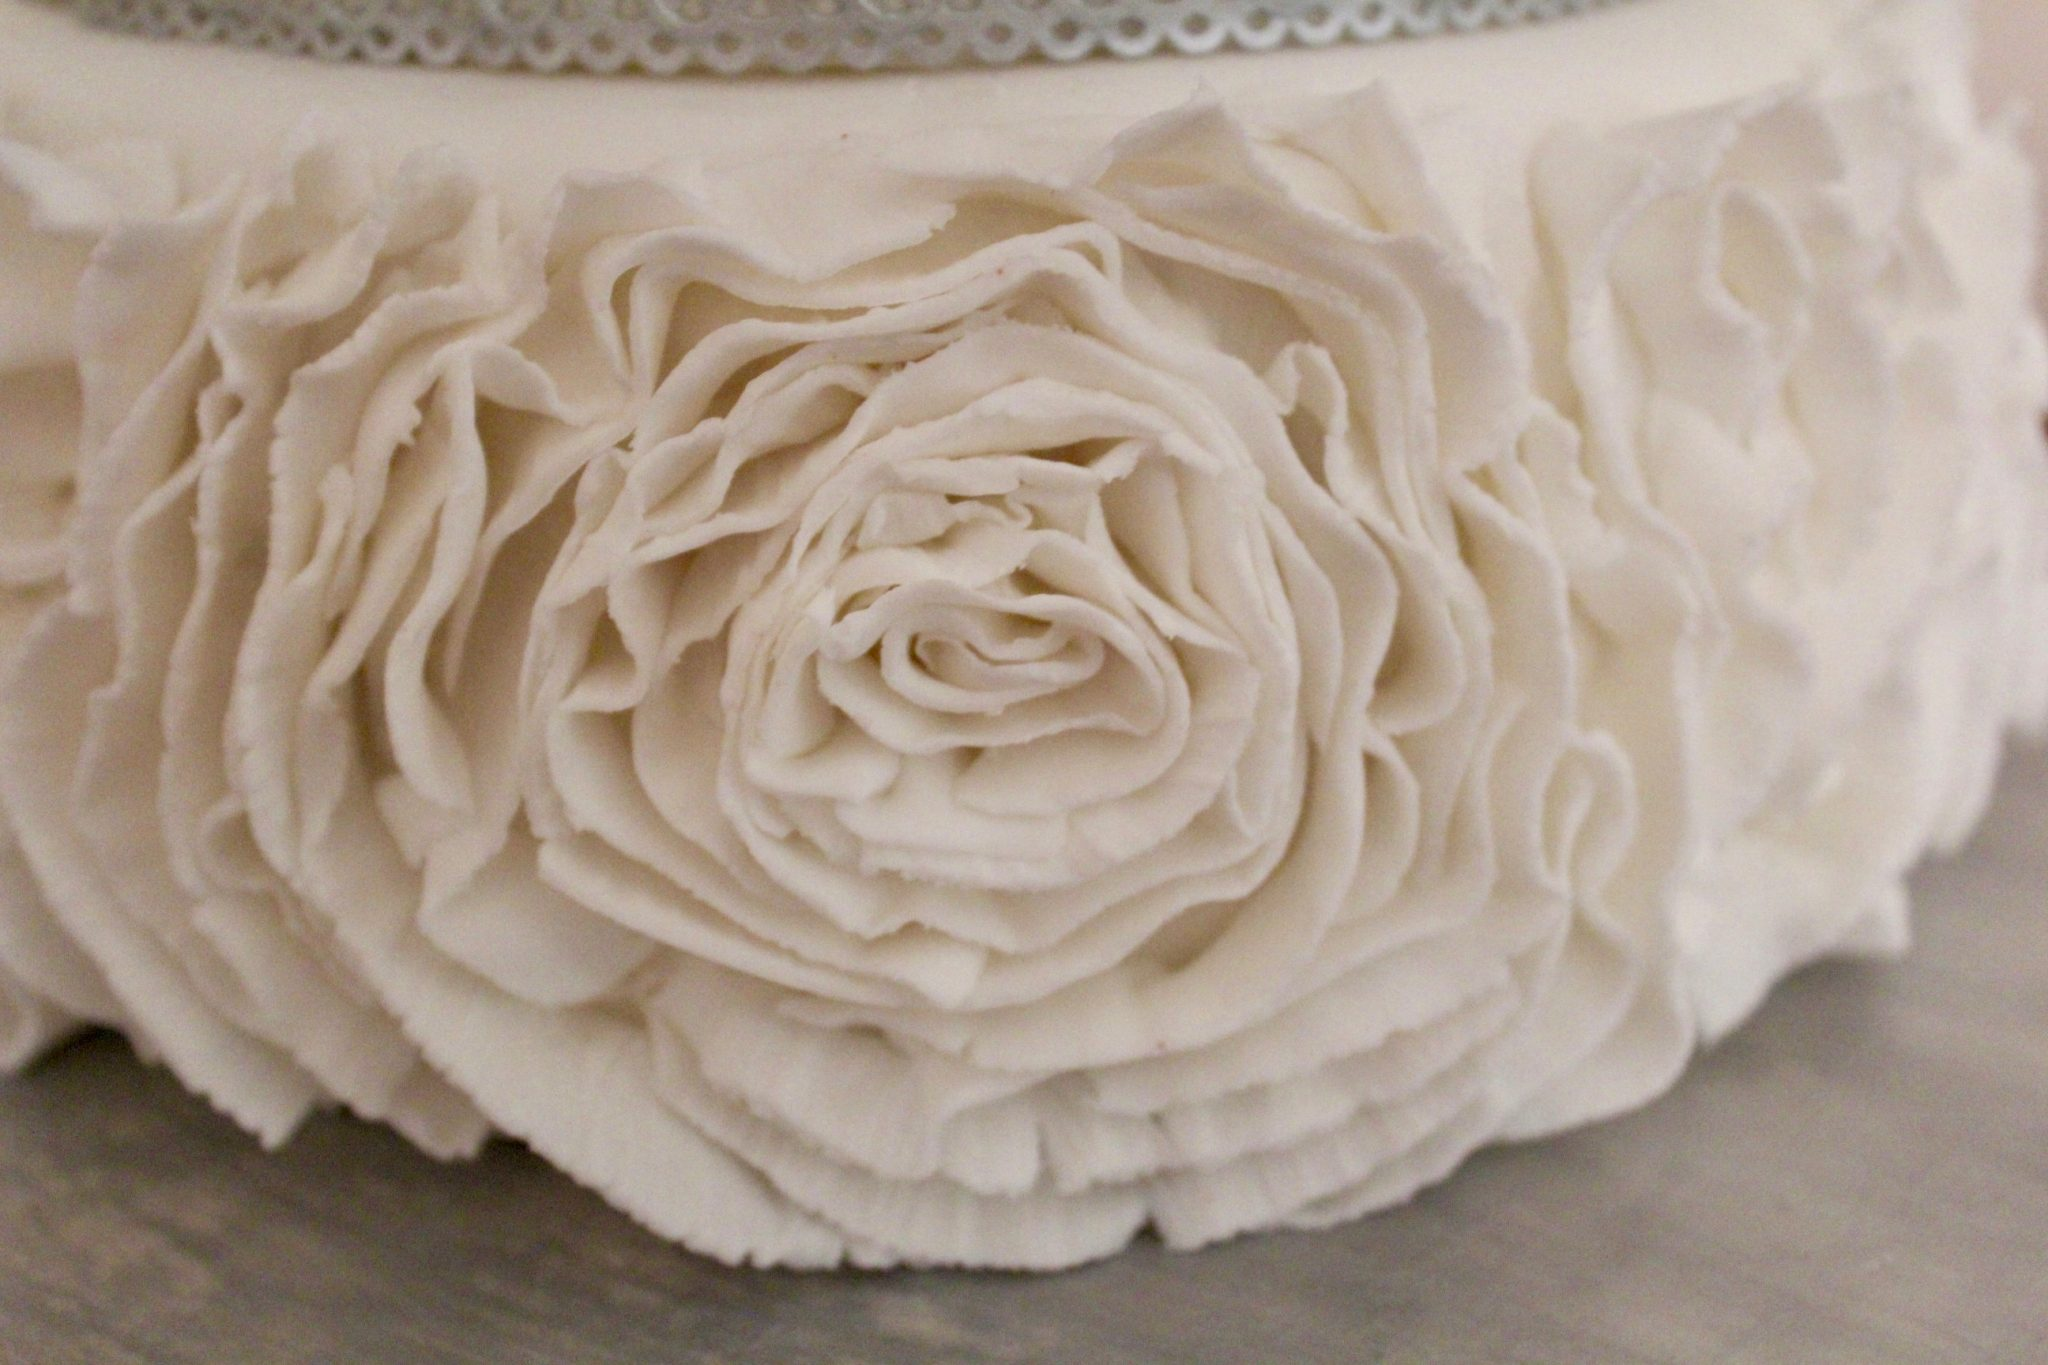 Edible Lace & Ruffles two-tier white and silver Wedding Cake